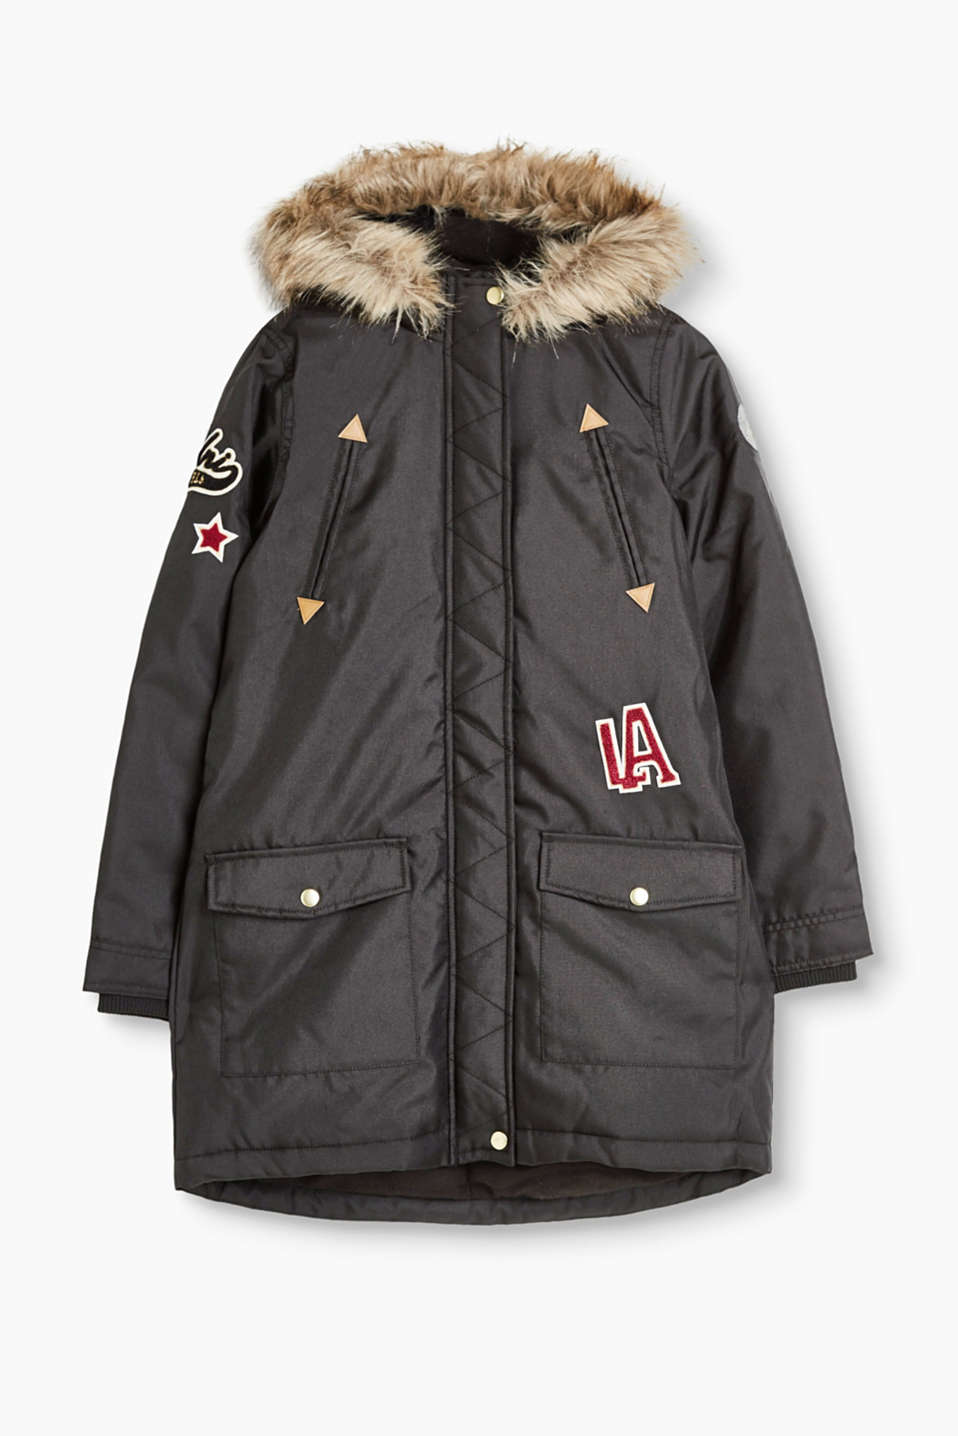 Stylish parka with a 2-way zip, detachable fur hood, colourful appliqués and fleece lining